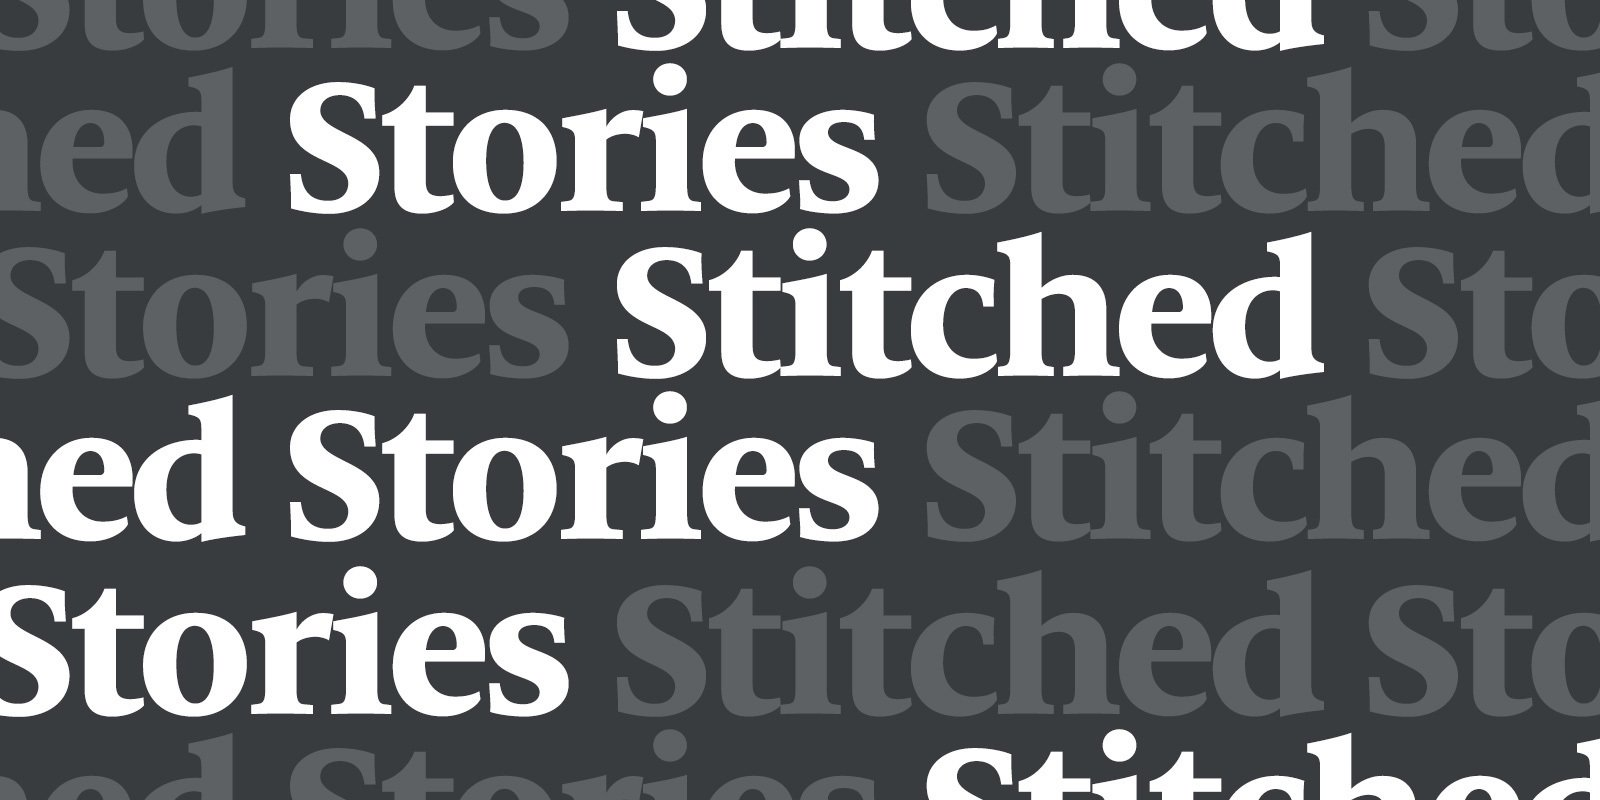 Photo 1 of 1 in Platform Update: Stitched Stories